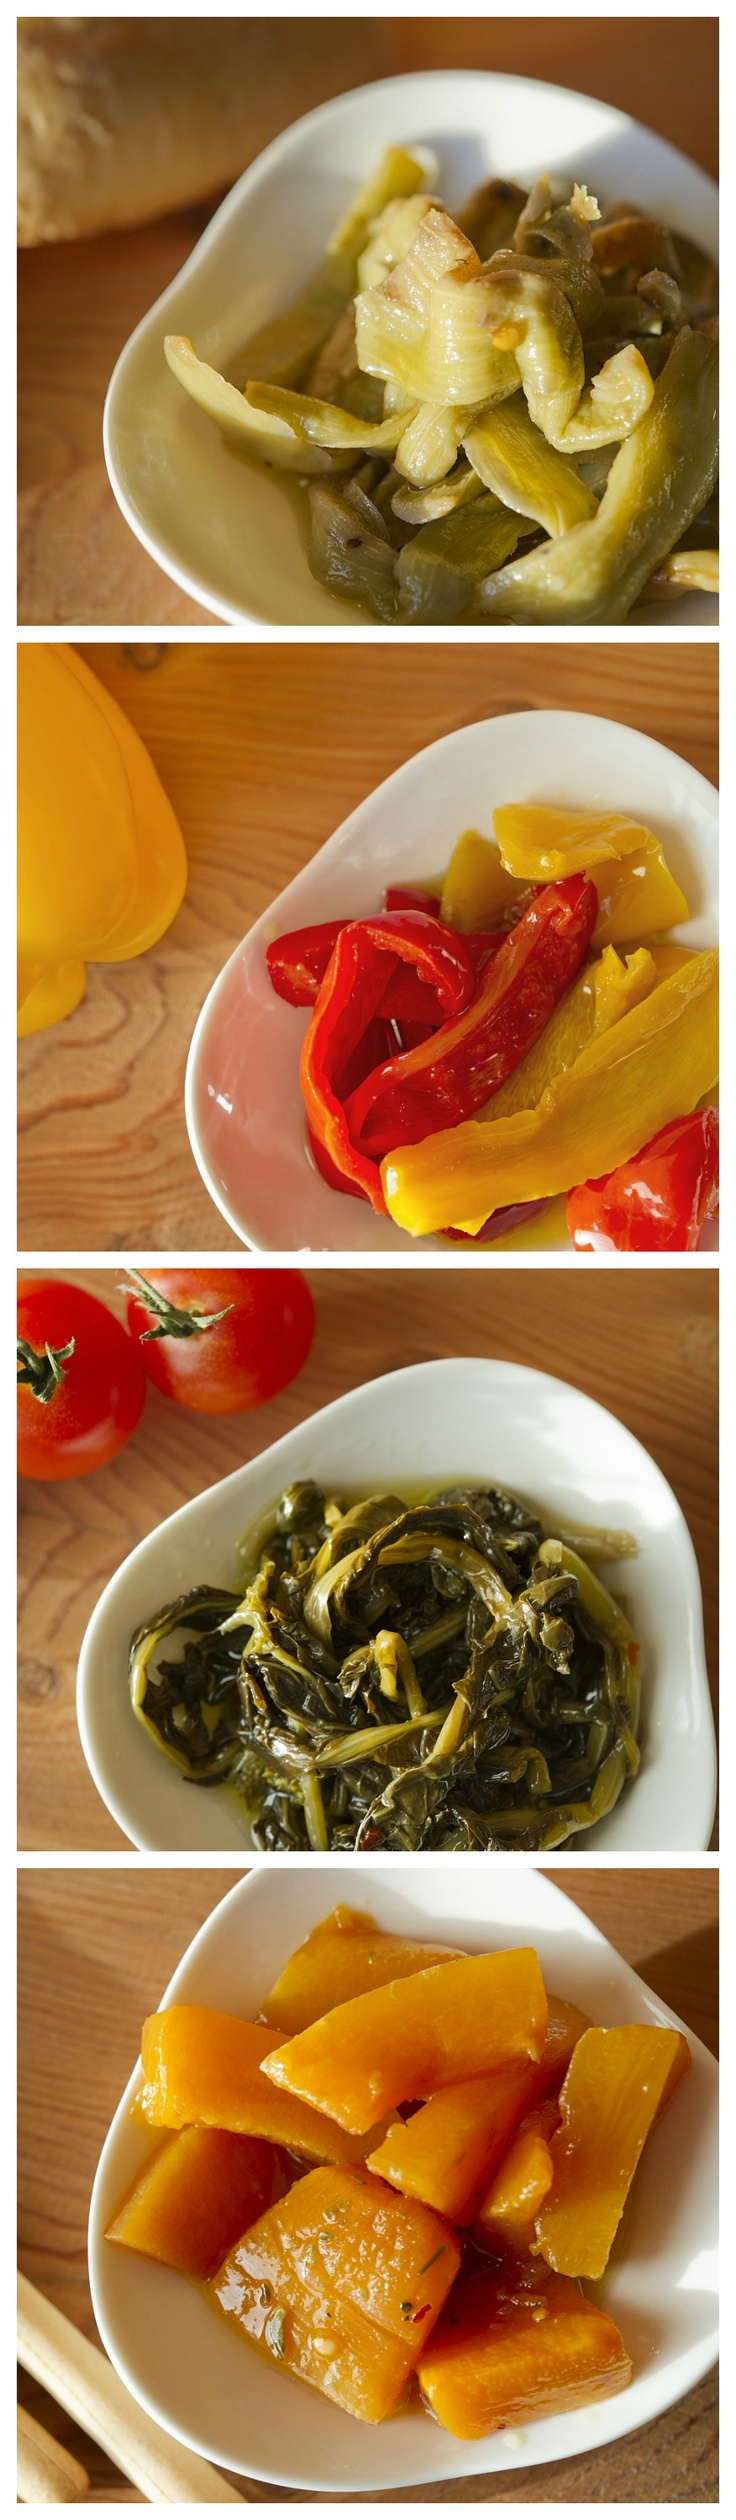 create simple and easy #starters or #sides with fresh seasonal #vegetables #preserved in #jars